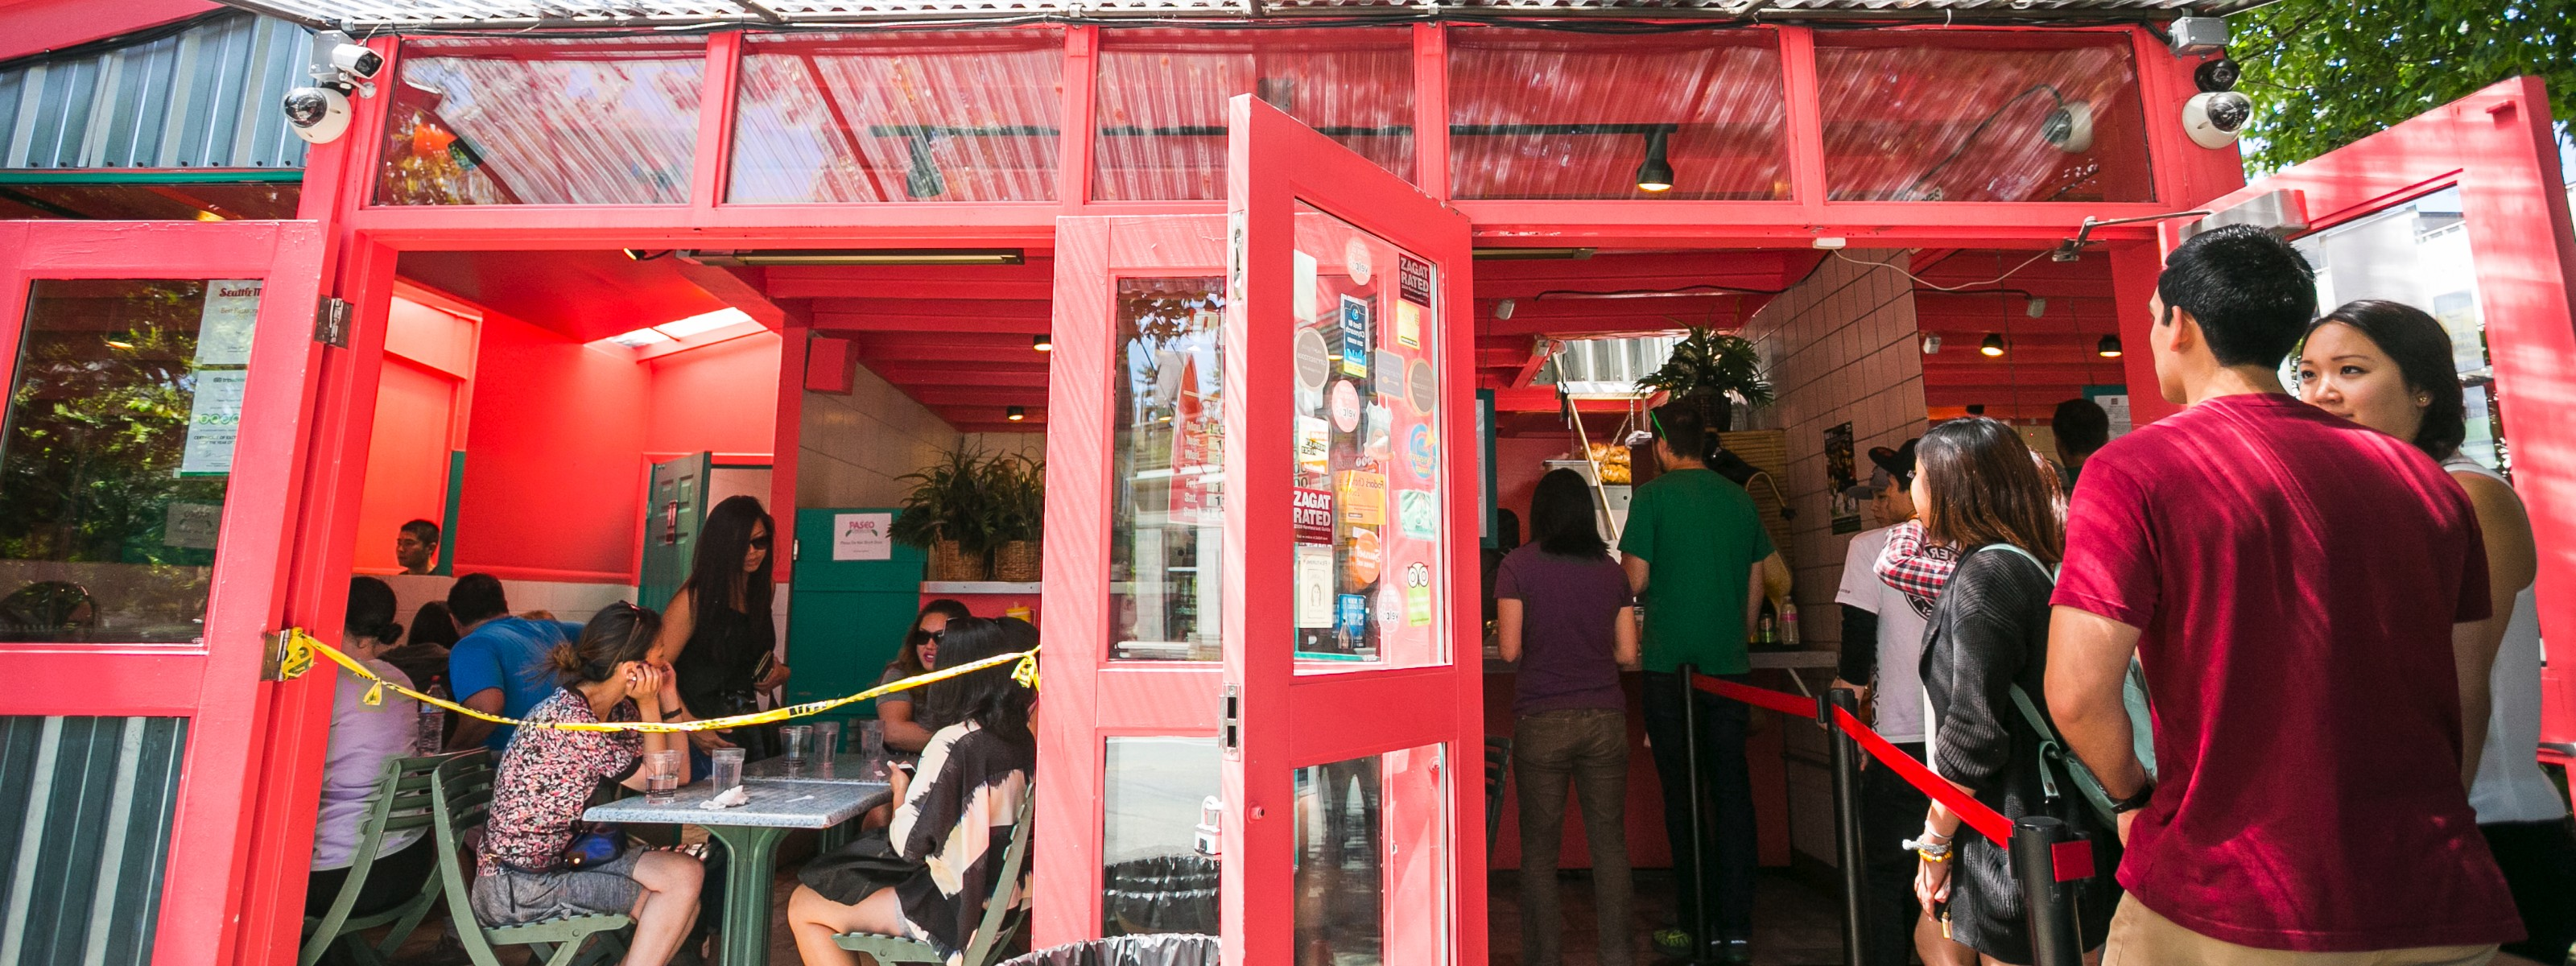 Paseo Caribbean Food - Fremont - Seattle - The Infatuation